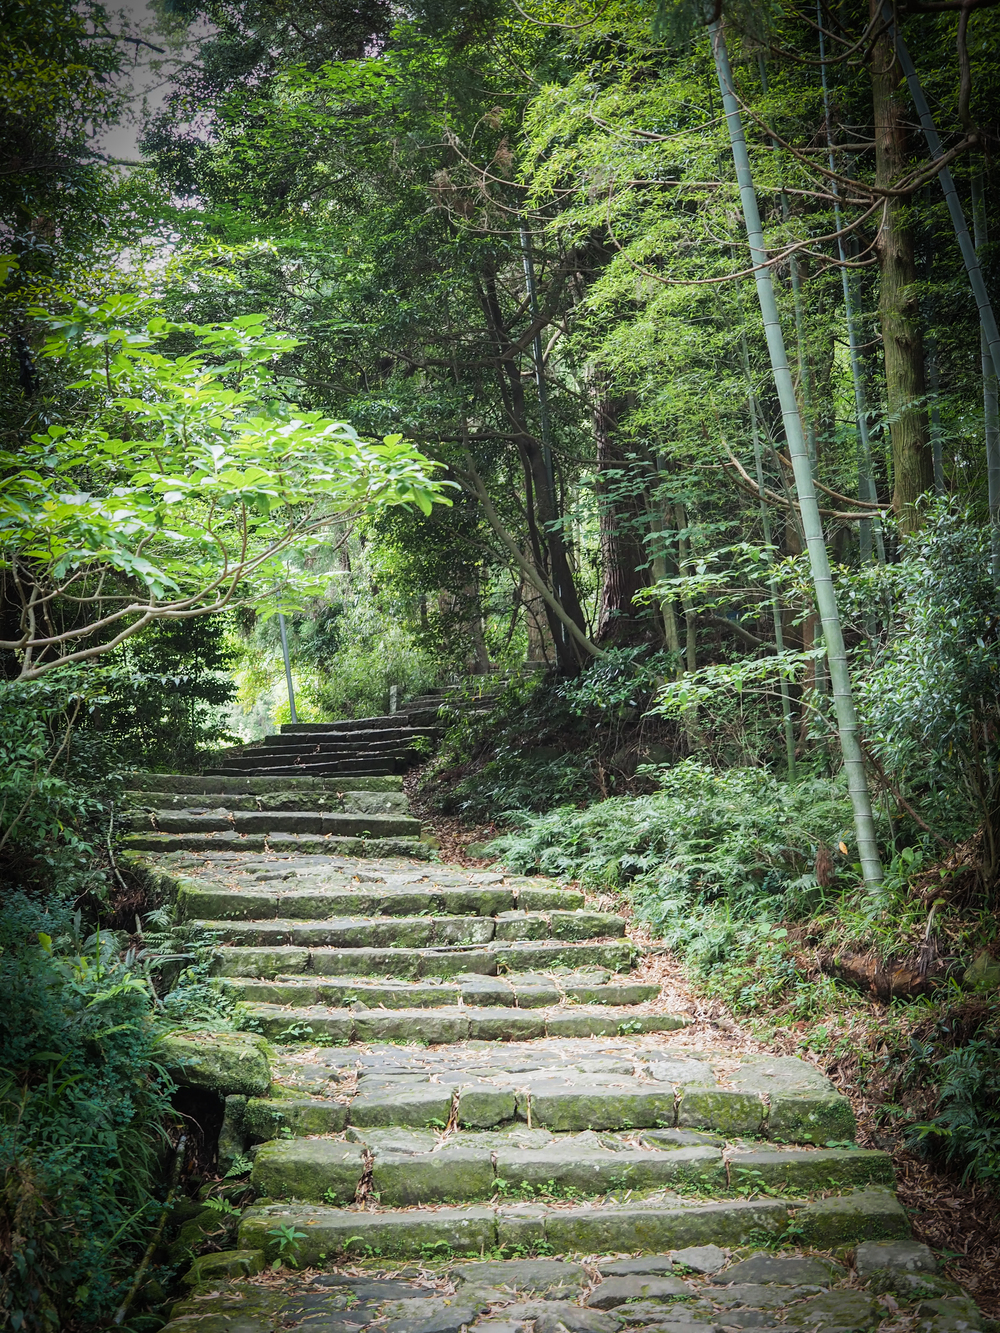 Daimon-zaka slope, 267 stairs